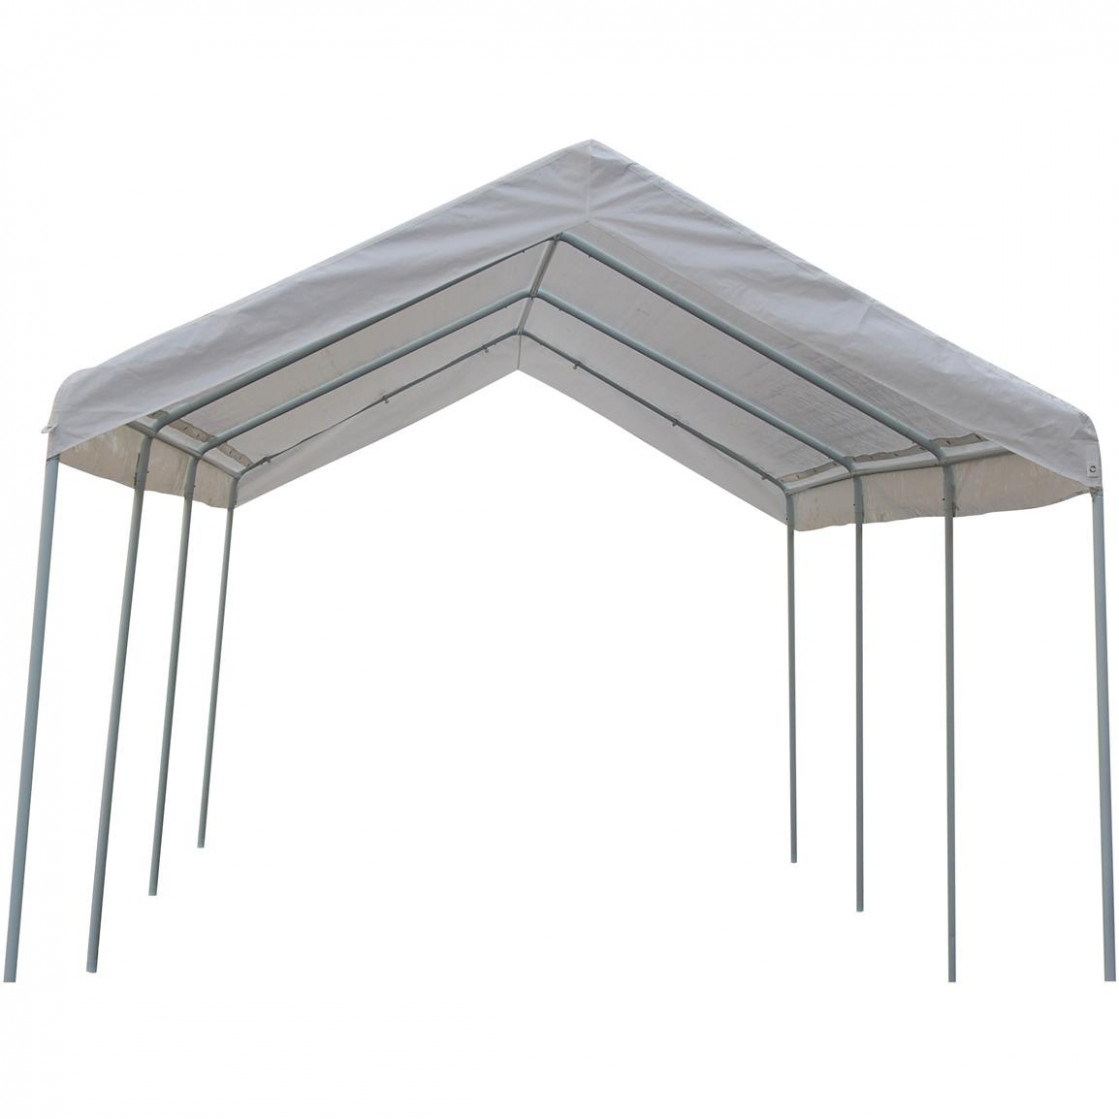 10x20' Canopy Carport With Side Walls 115407, Garage ..